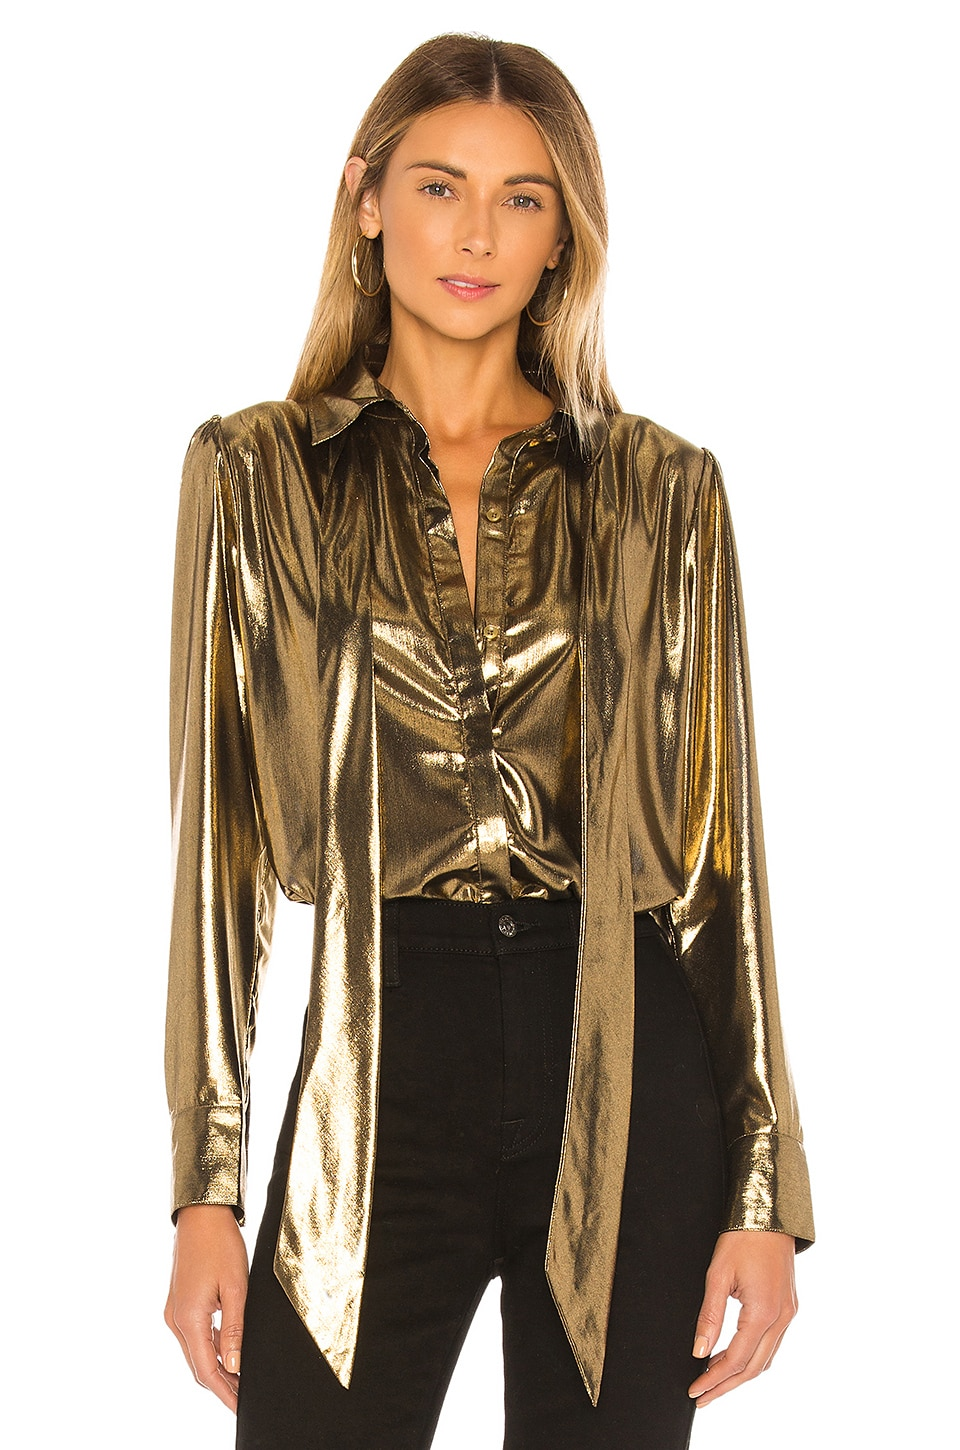 7 For All Mankind Foil Satin Blouse with Neck Tie Top in Liquid Gold